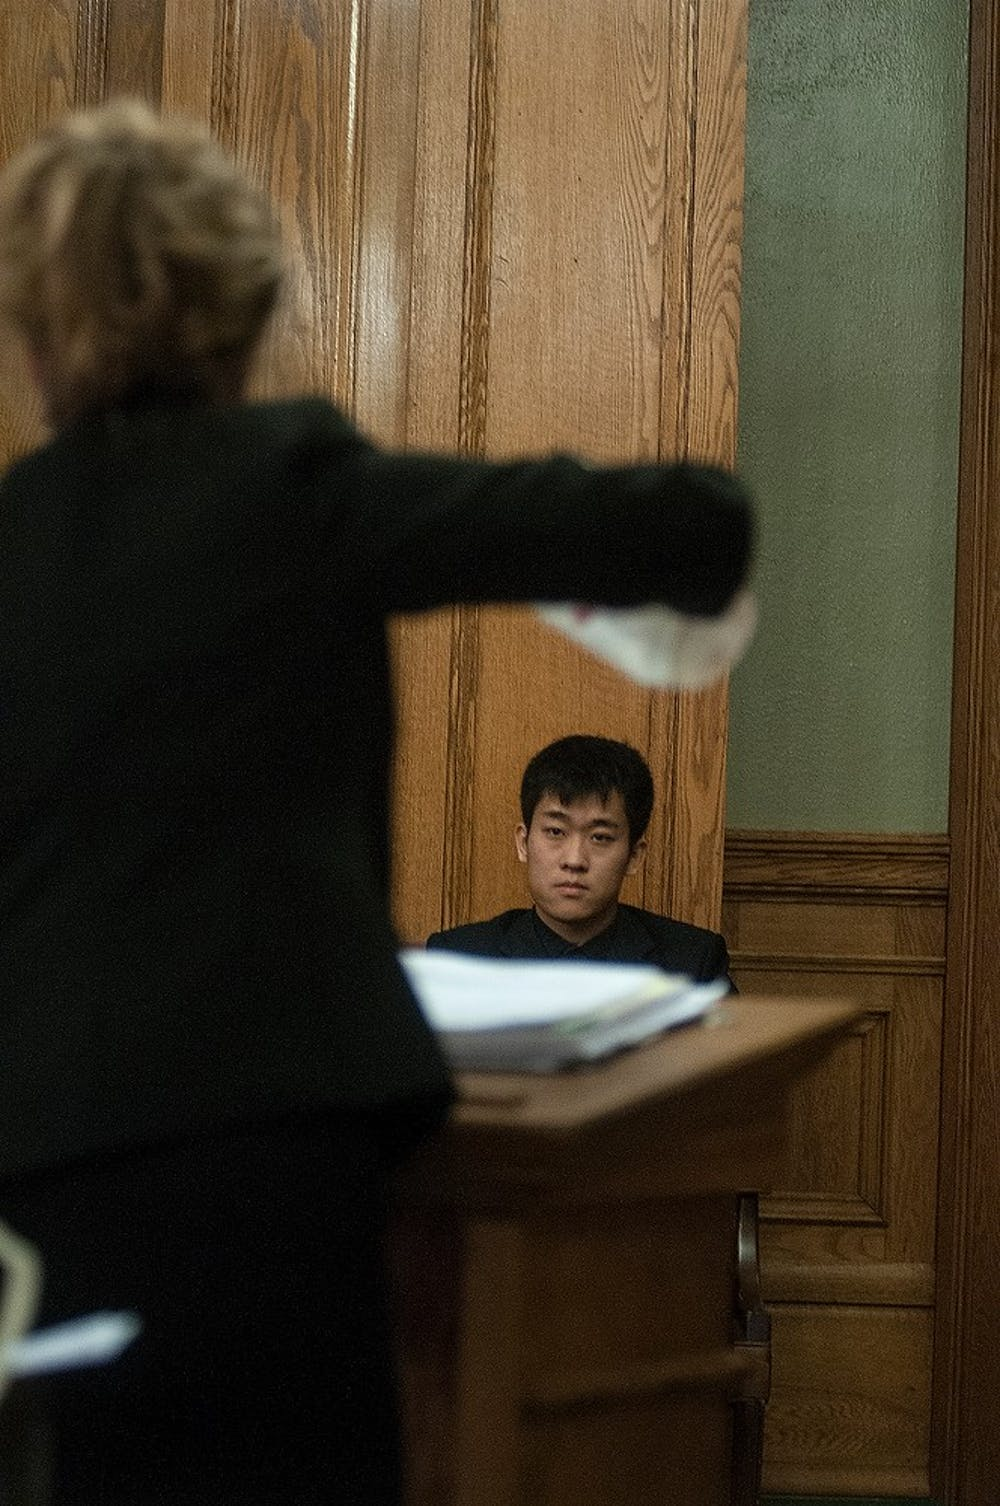 <p>Ingham County assistant prosecutor Kimberly Hesse holds up a plastic water pitcher while cross-examining MSU alumnus Meng Long Li Jan. 30 at 30th Circuit Court in the Ingham County Courthouse, 315 S. Jefferson St, Mason, Michigan. The water pitcher is a major piece of evidence involved in crimes that were committed Jan. 31, 2014, at Limit Pool &amp; Karaoke Club, 2800 E. Grand River Ave. and had been used to repeatedly beat the student who was attacked that evening. Allyson Telgenhof/The State News.</p>